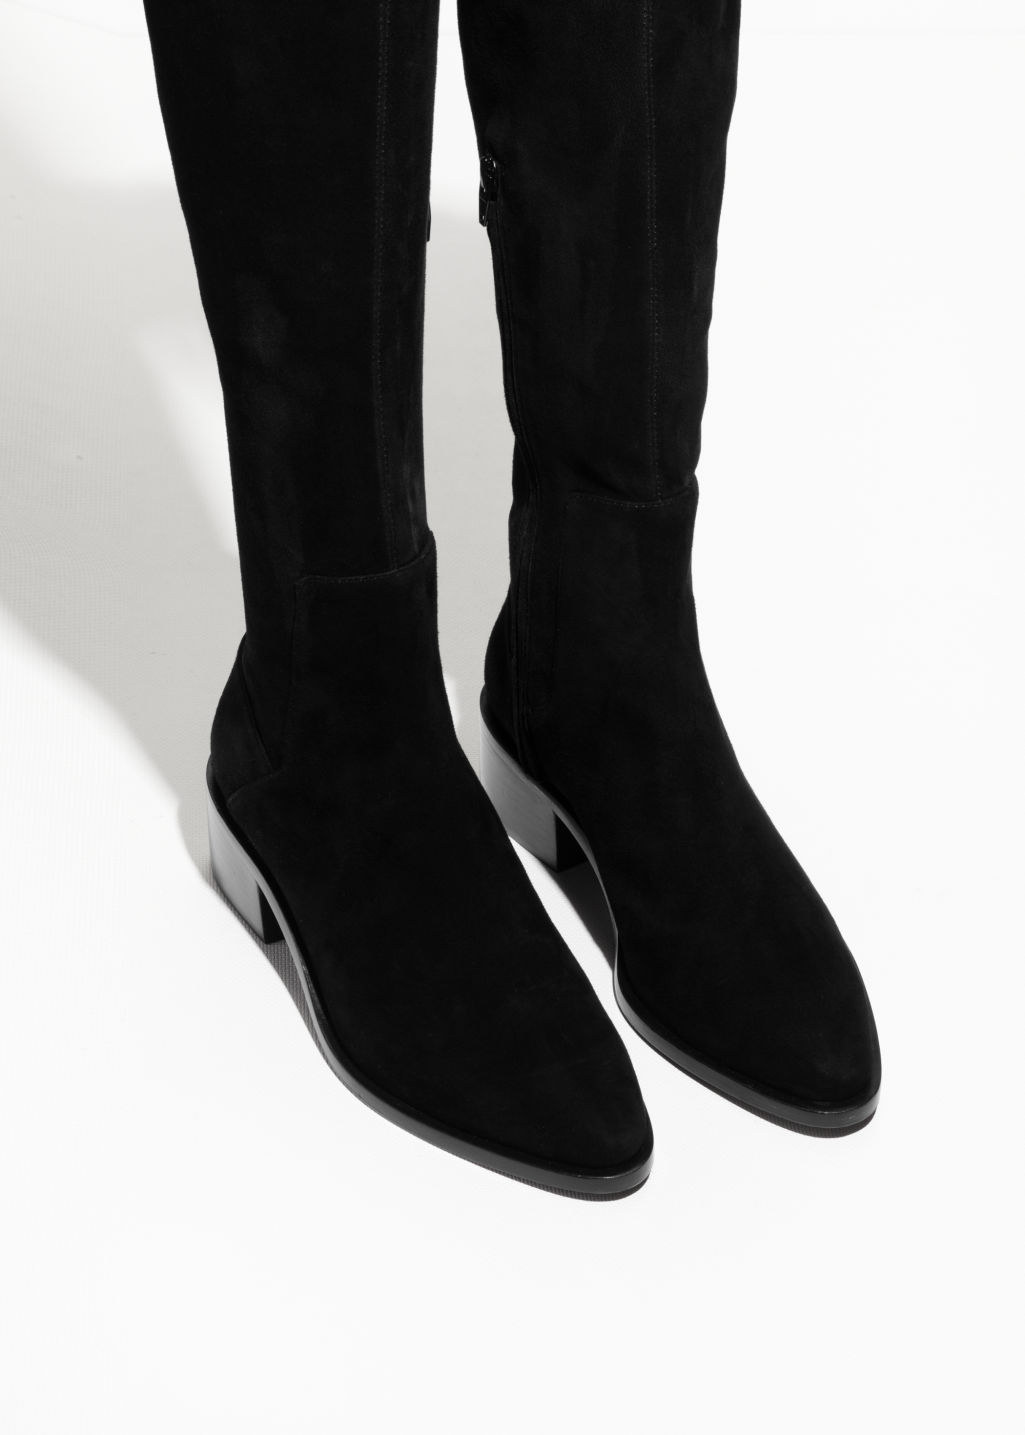 & OTHER STORIES Suede Over The Knee Boots dGkT4aYB